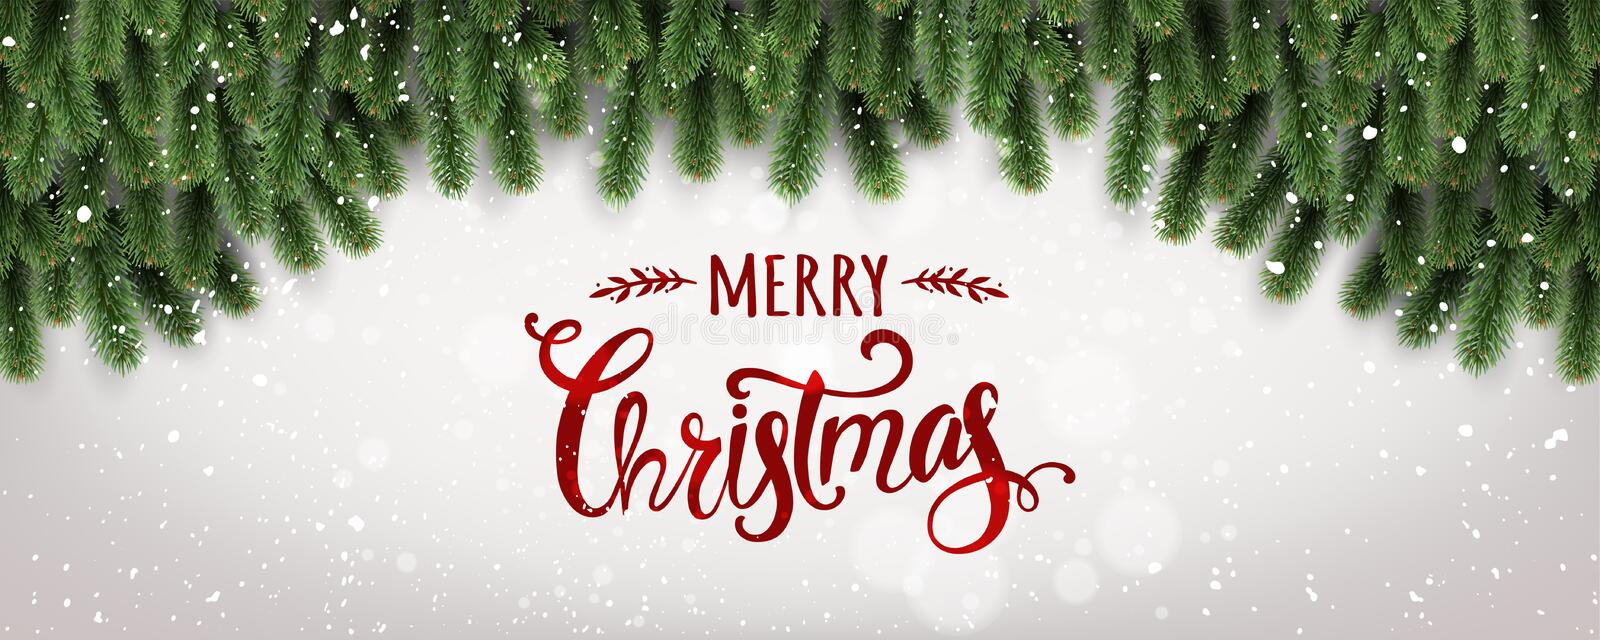 Merry Christmas Typographical on white background with tree branches decorated with stars, lights, snowflakes. Xmas theme. Vector Illustration royalty free illustration